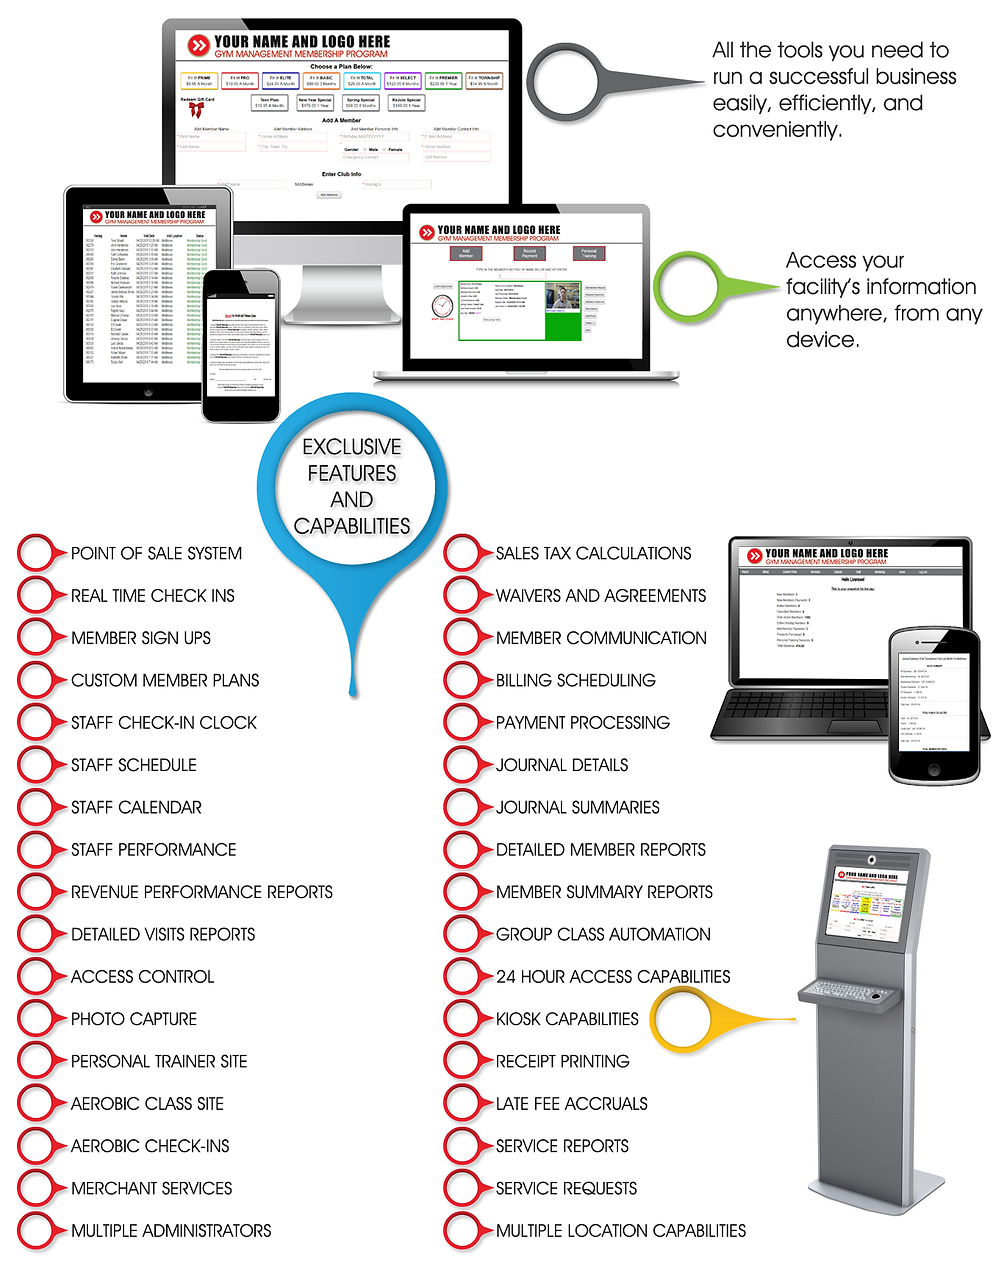 Gym Management Software includin member sign-up, check-in, payment processing, class automation, and more